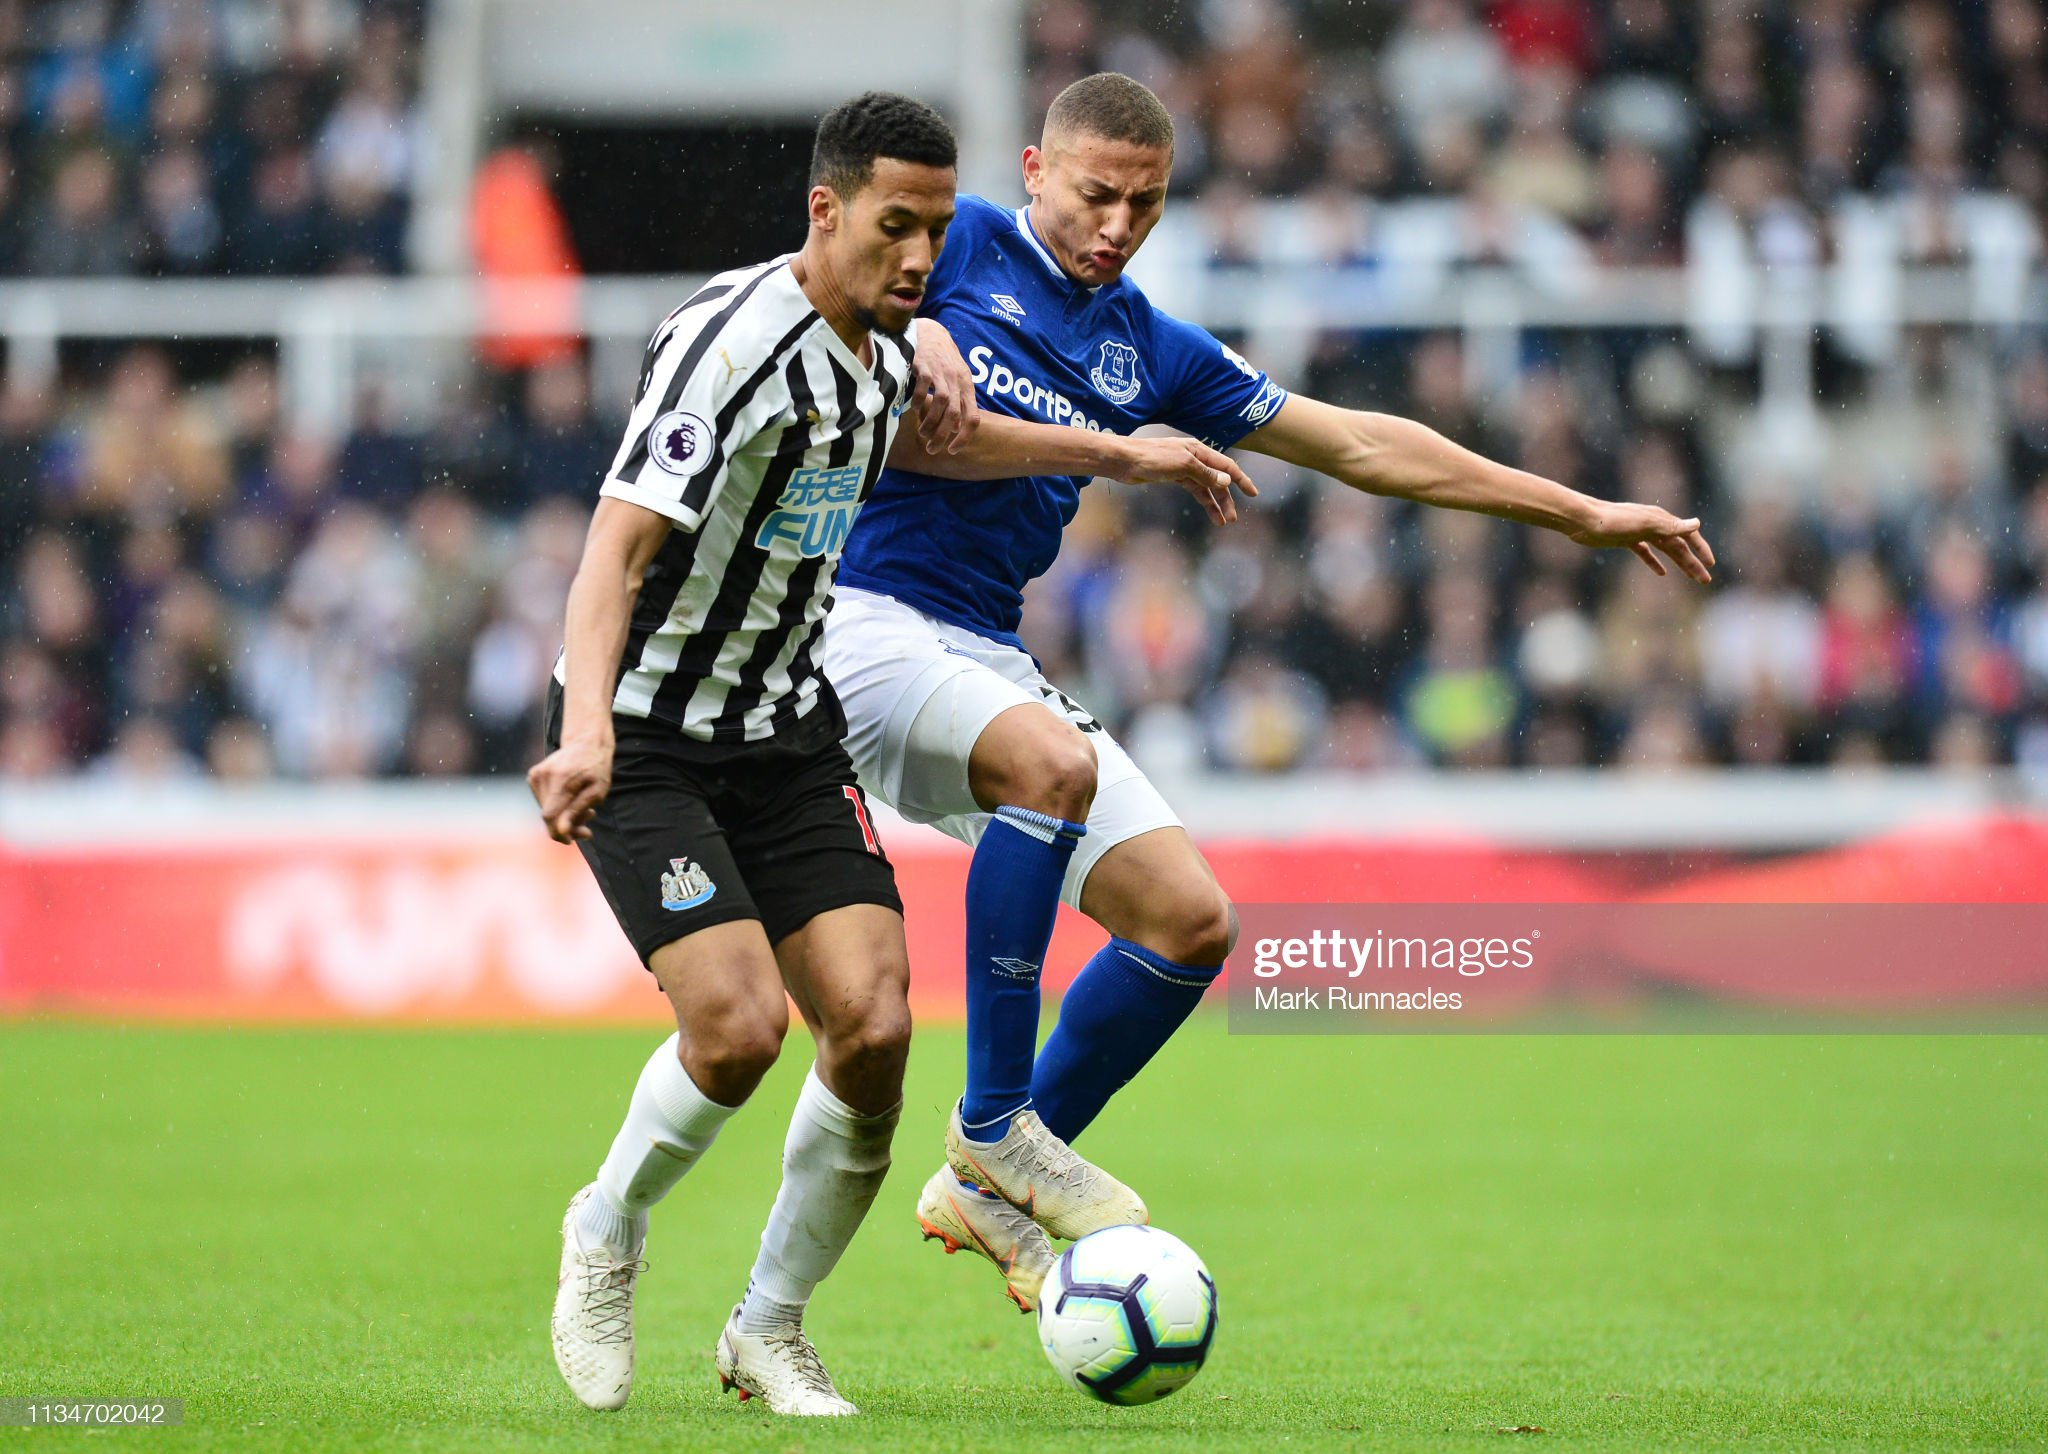 Newcastle v Everton preview, prediction and odds